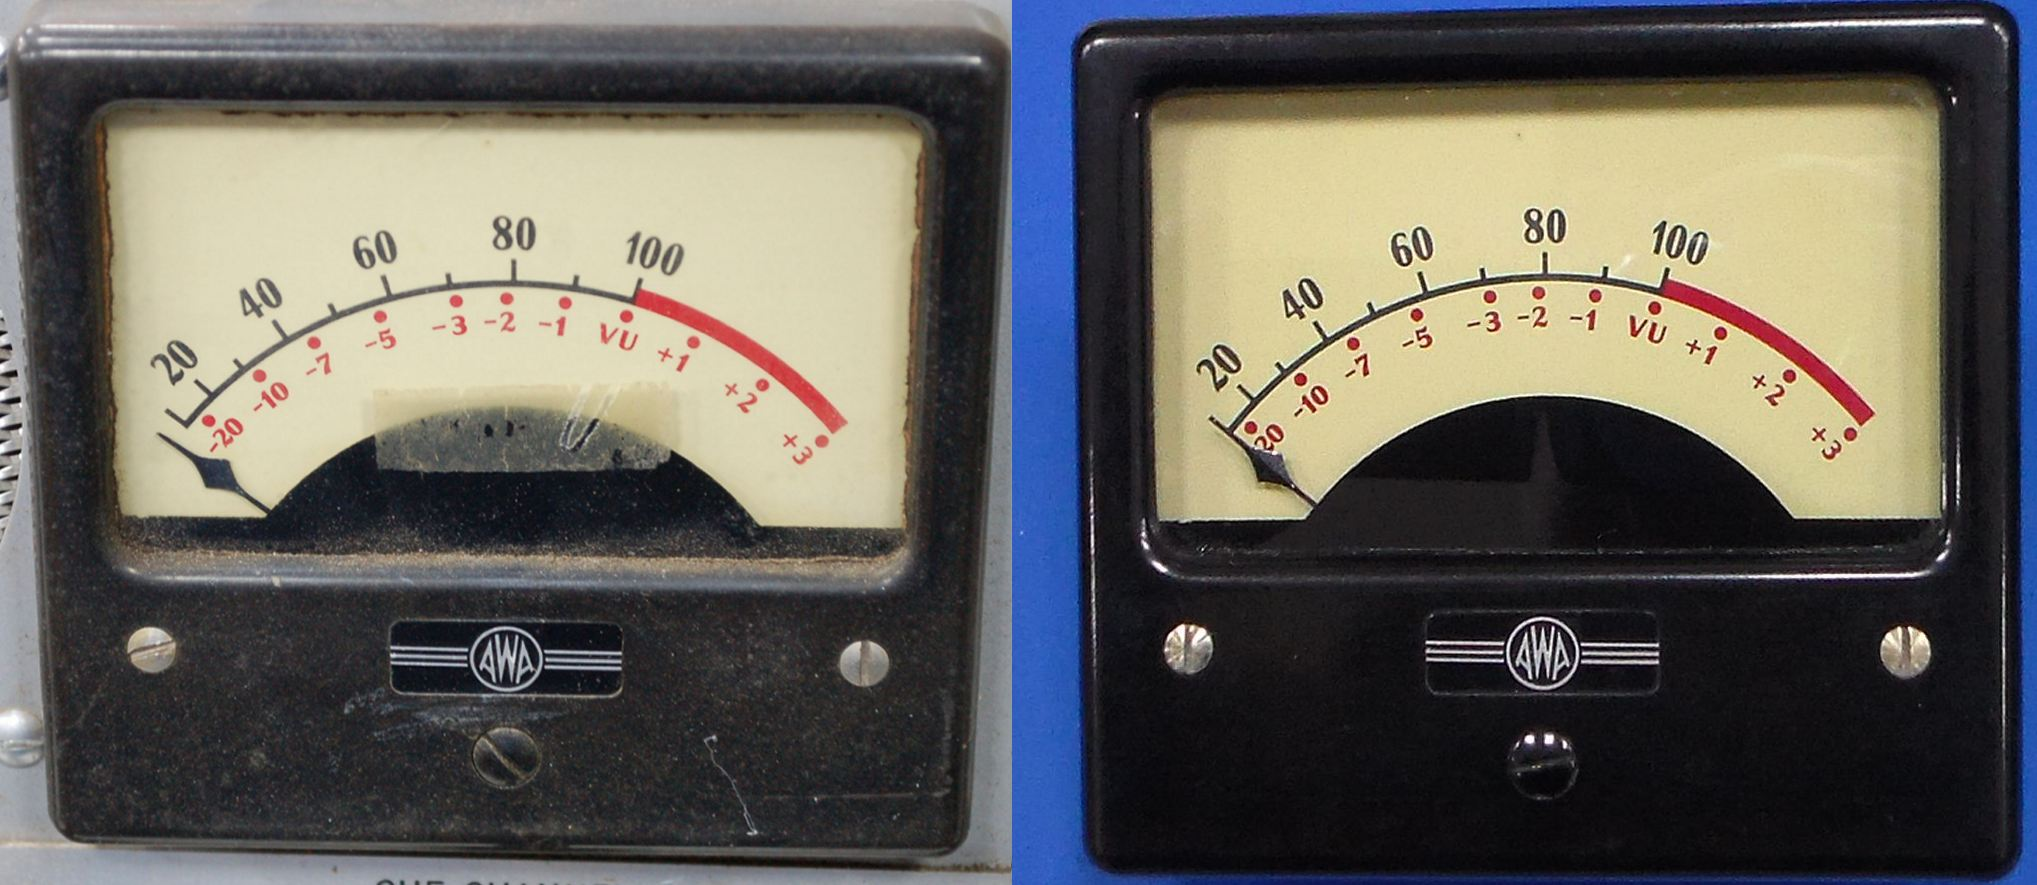 Awa Consolette Bac 1 2g61226 Vu Meter Here Is A Before And After Shot Of The Original Apart From Gerenal Cleaning Polishing Not Much Effort Was Required To Bring Back